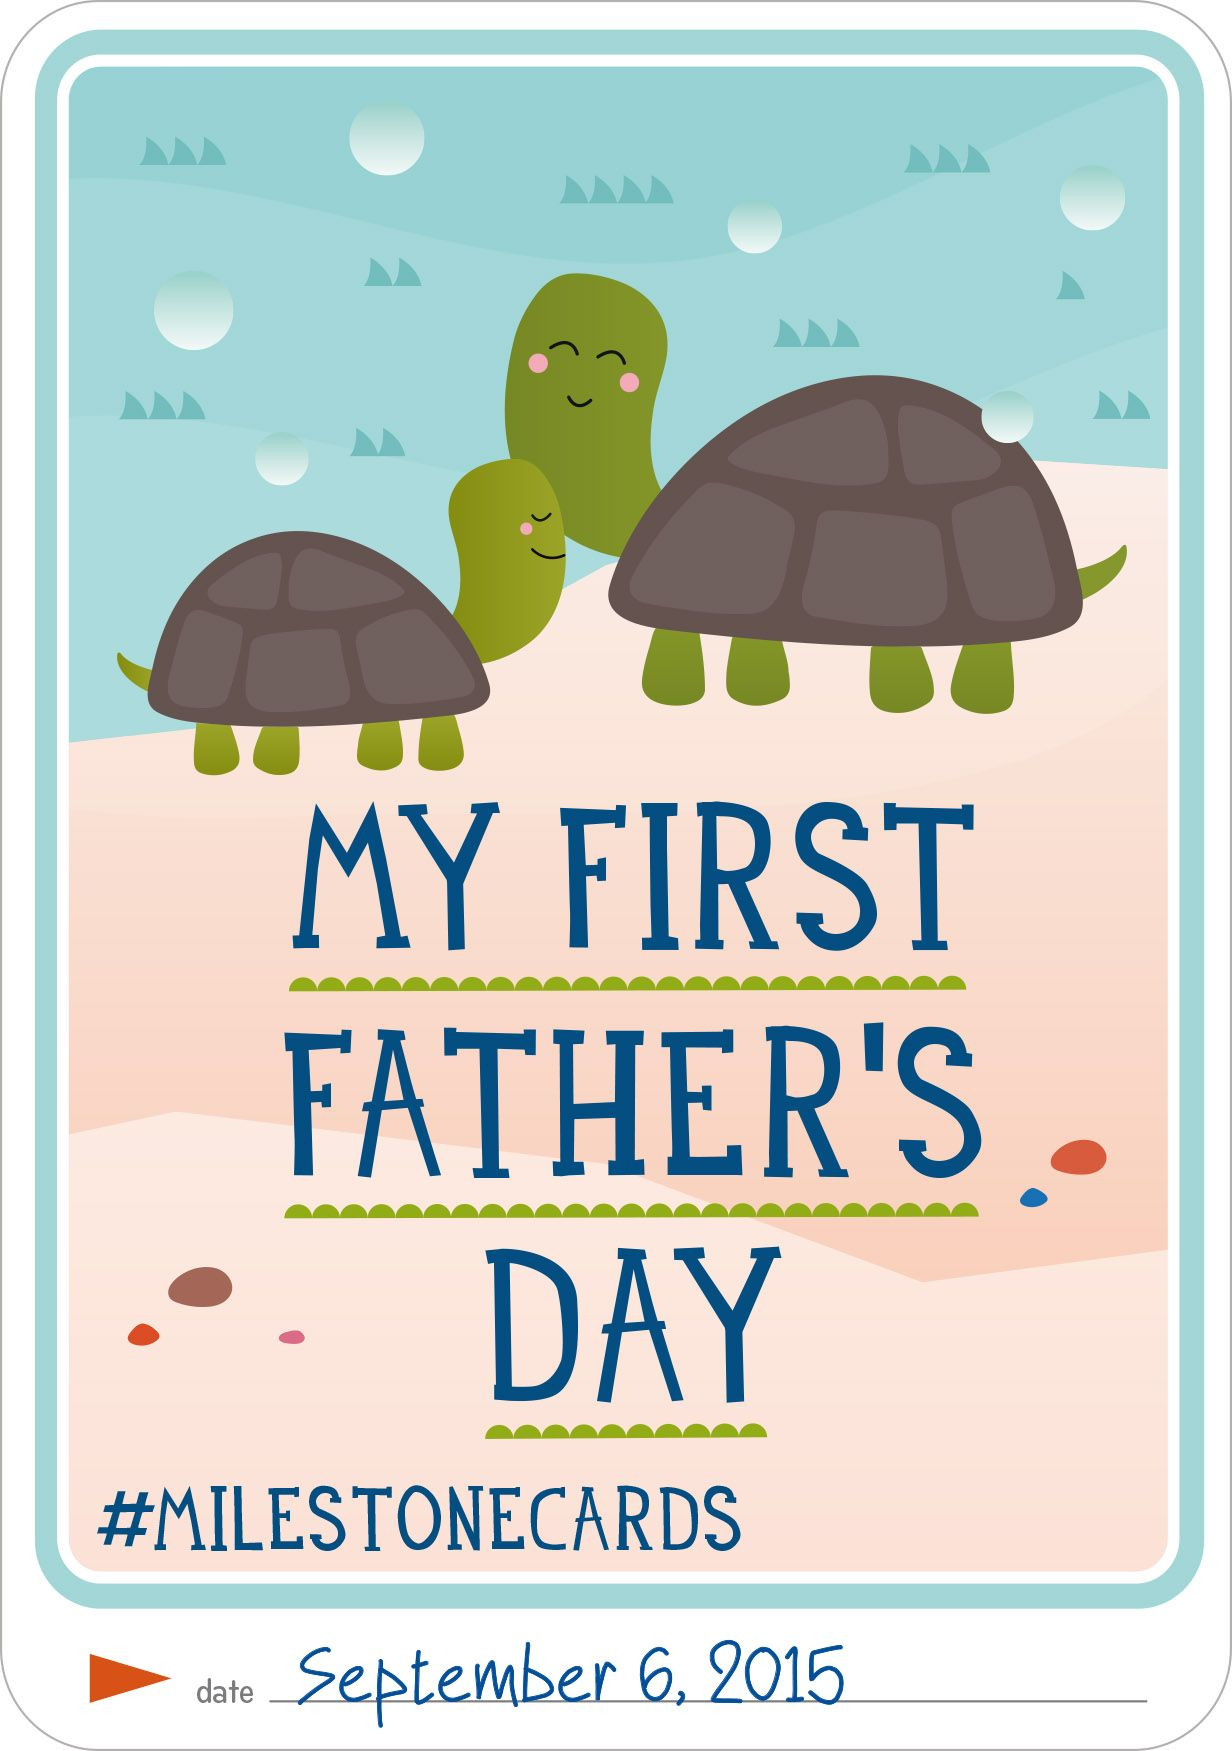 Father's Day in Australia & New Zealand this Sunday